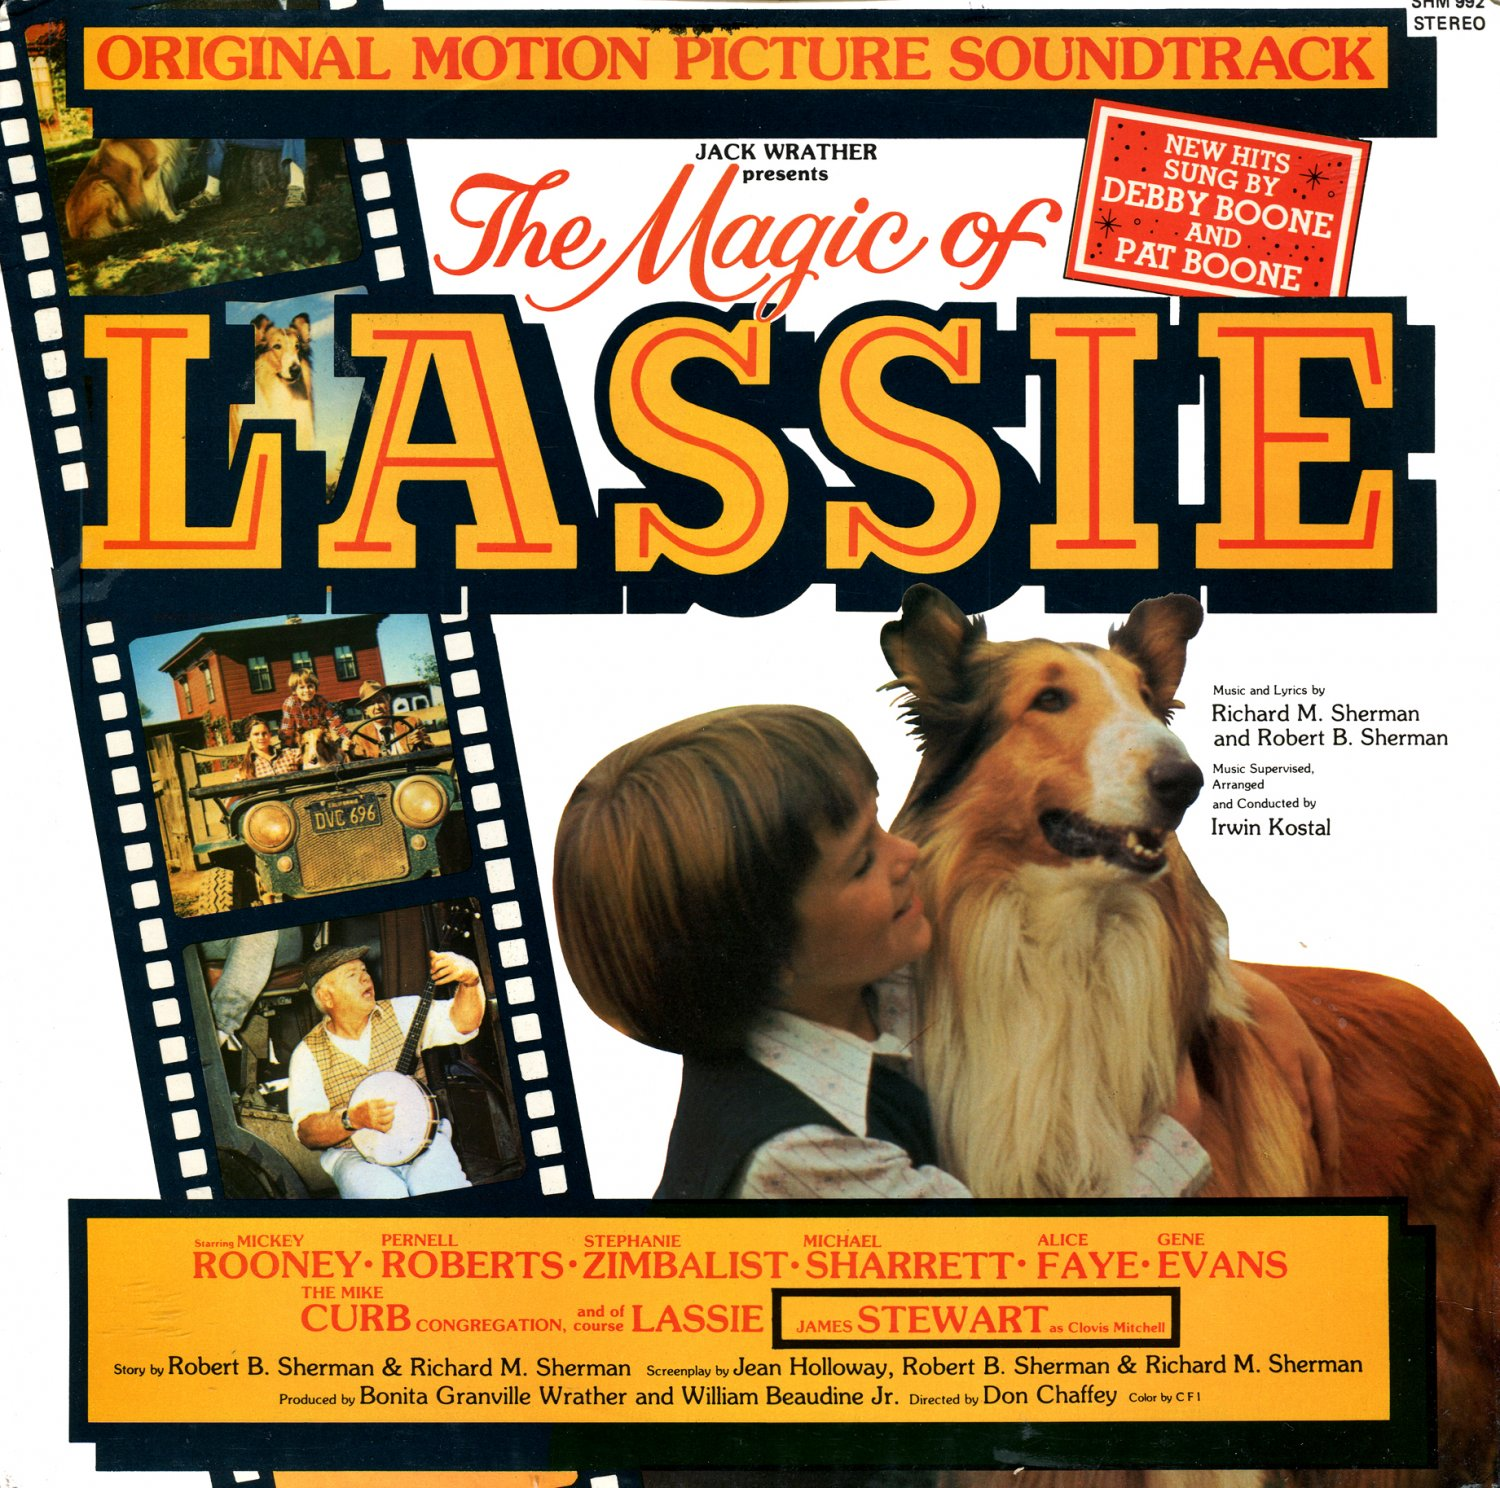 The Magic Of Lassie - Original Soundtrack, Sherman Brothers OST LP/CD